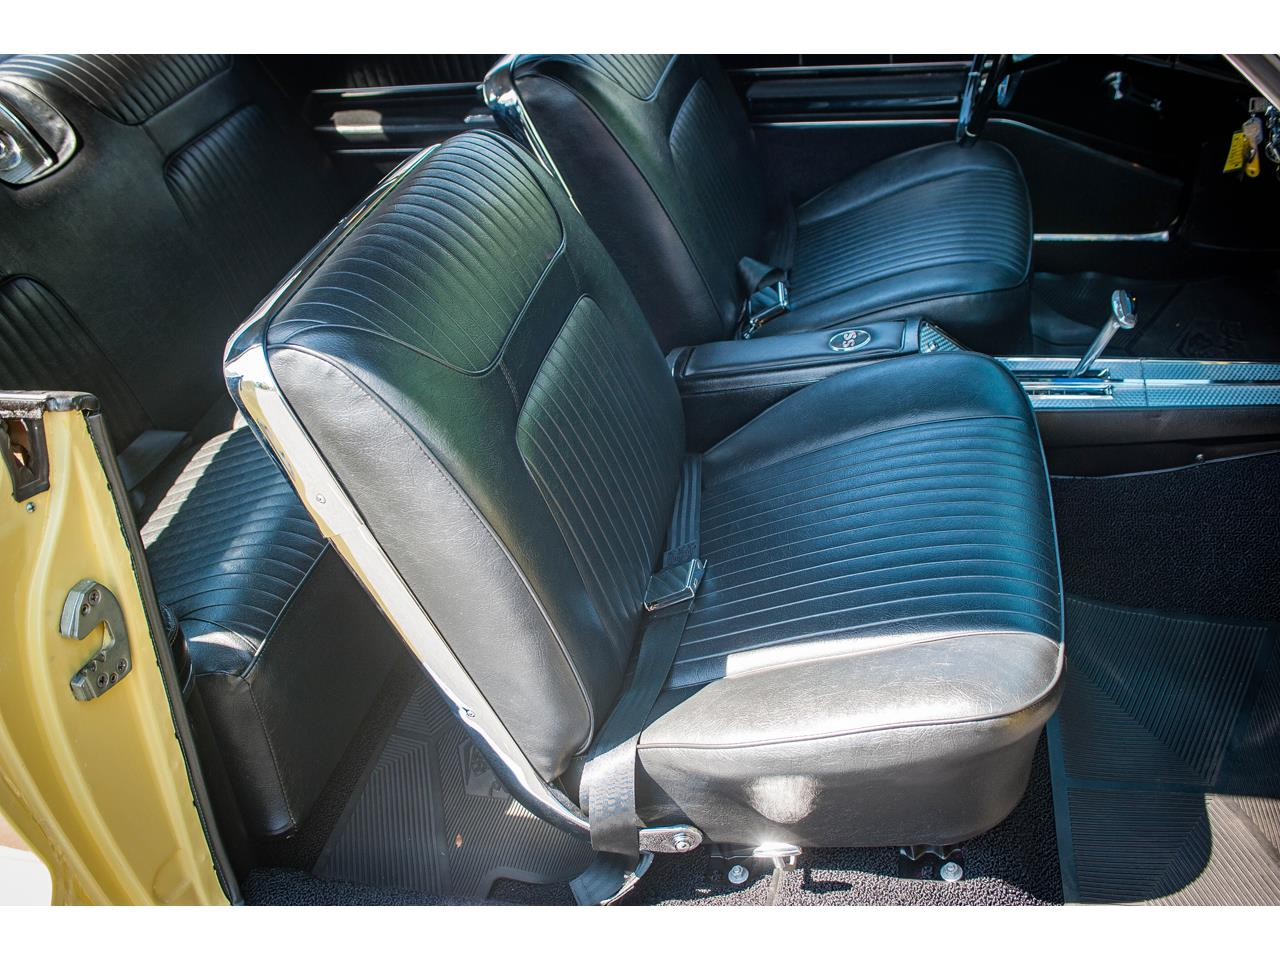 Large Picture of '64 Impala - $45,000.00 Offered by Gateway Classic Cars - St. Louis - QRDR